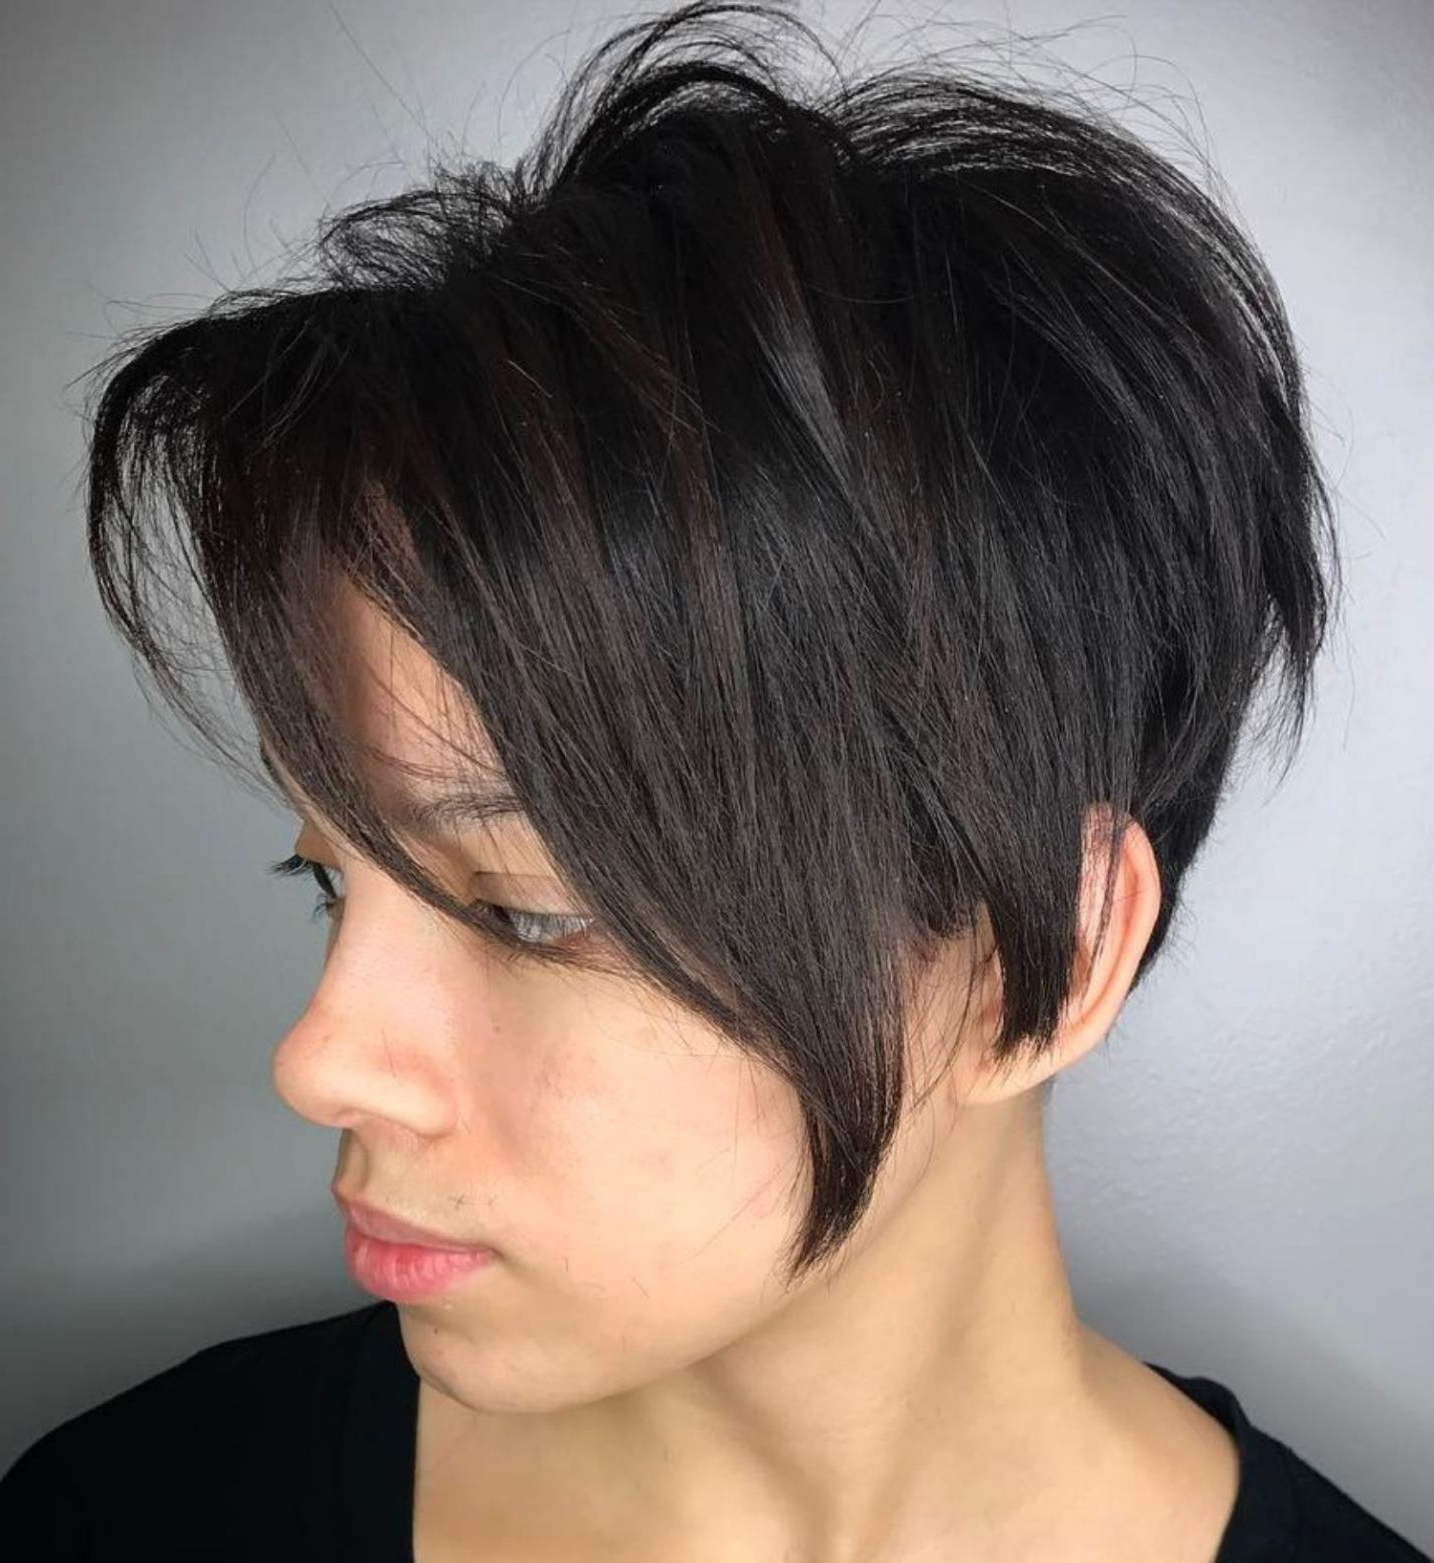 Pixie Haircuts For Thick Hair – 50 Ideas Of Ideal Short Haircuts With Regard To Pixie Bob Hairstyles With Nape Undercut (View 16 of 20)